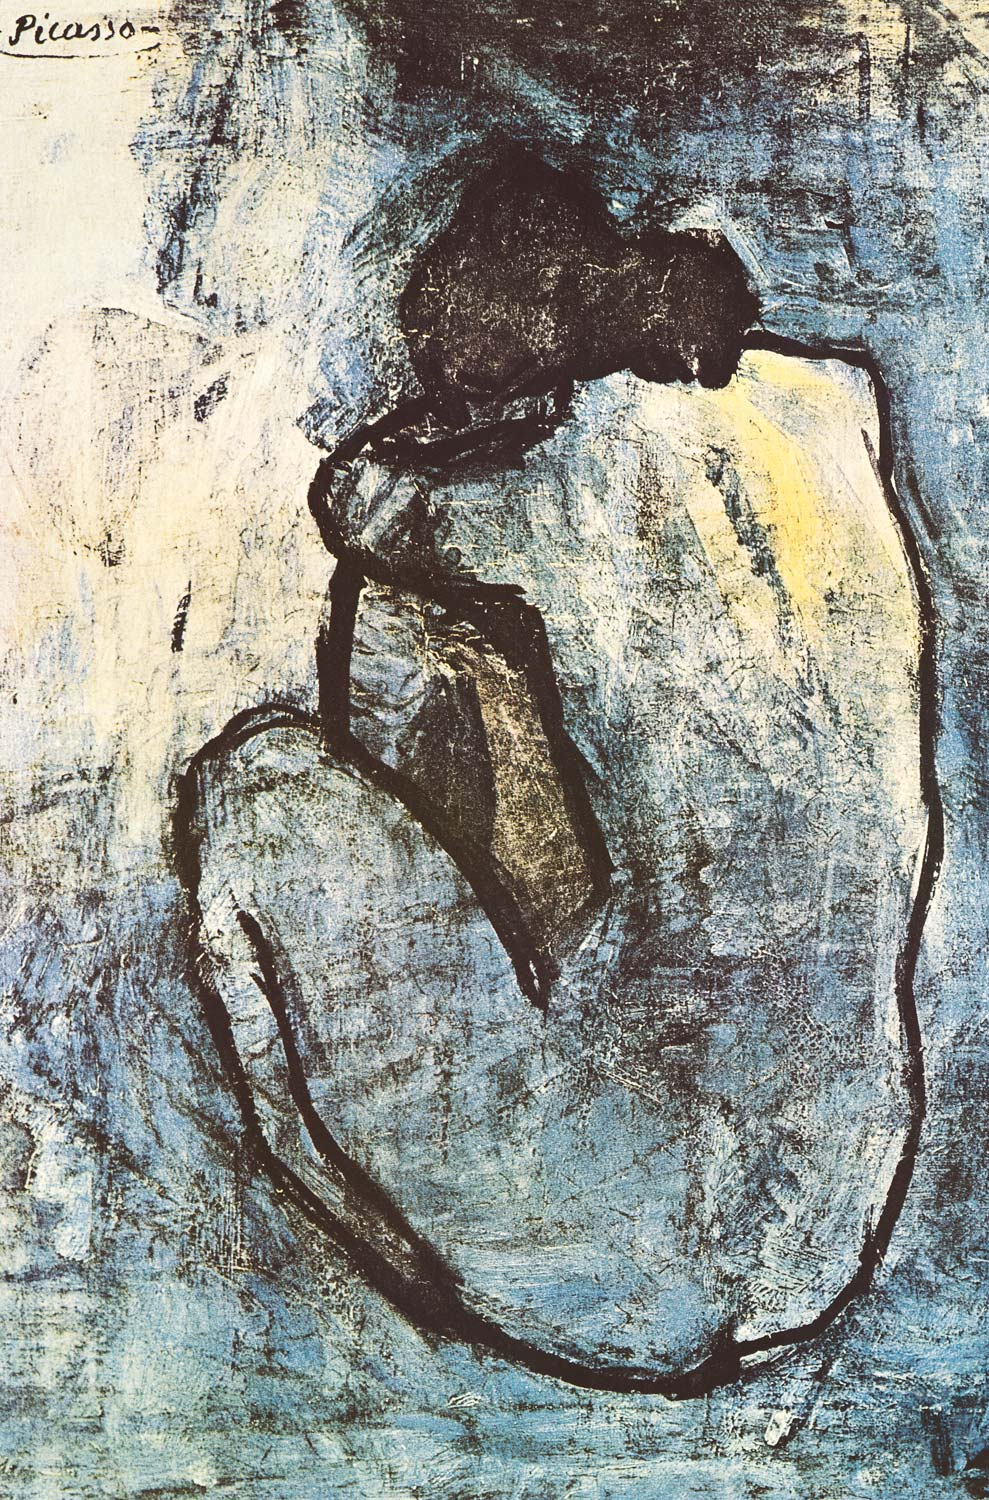 Image of Pablo Picasso Blue Nude Art Poster 24x36